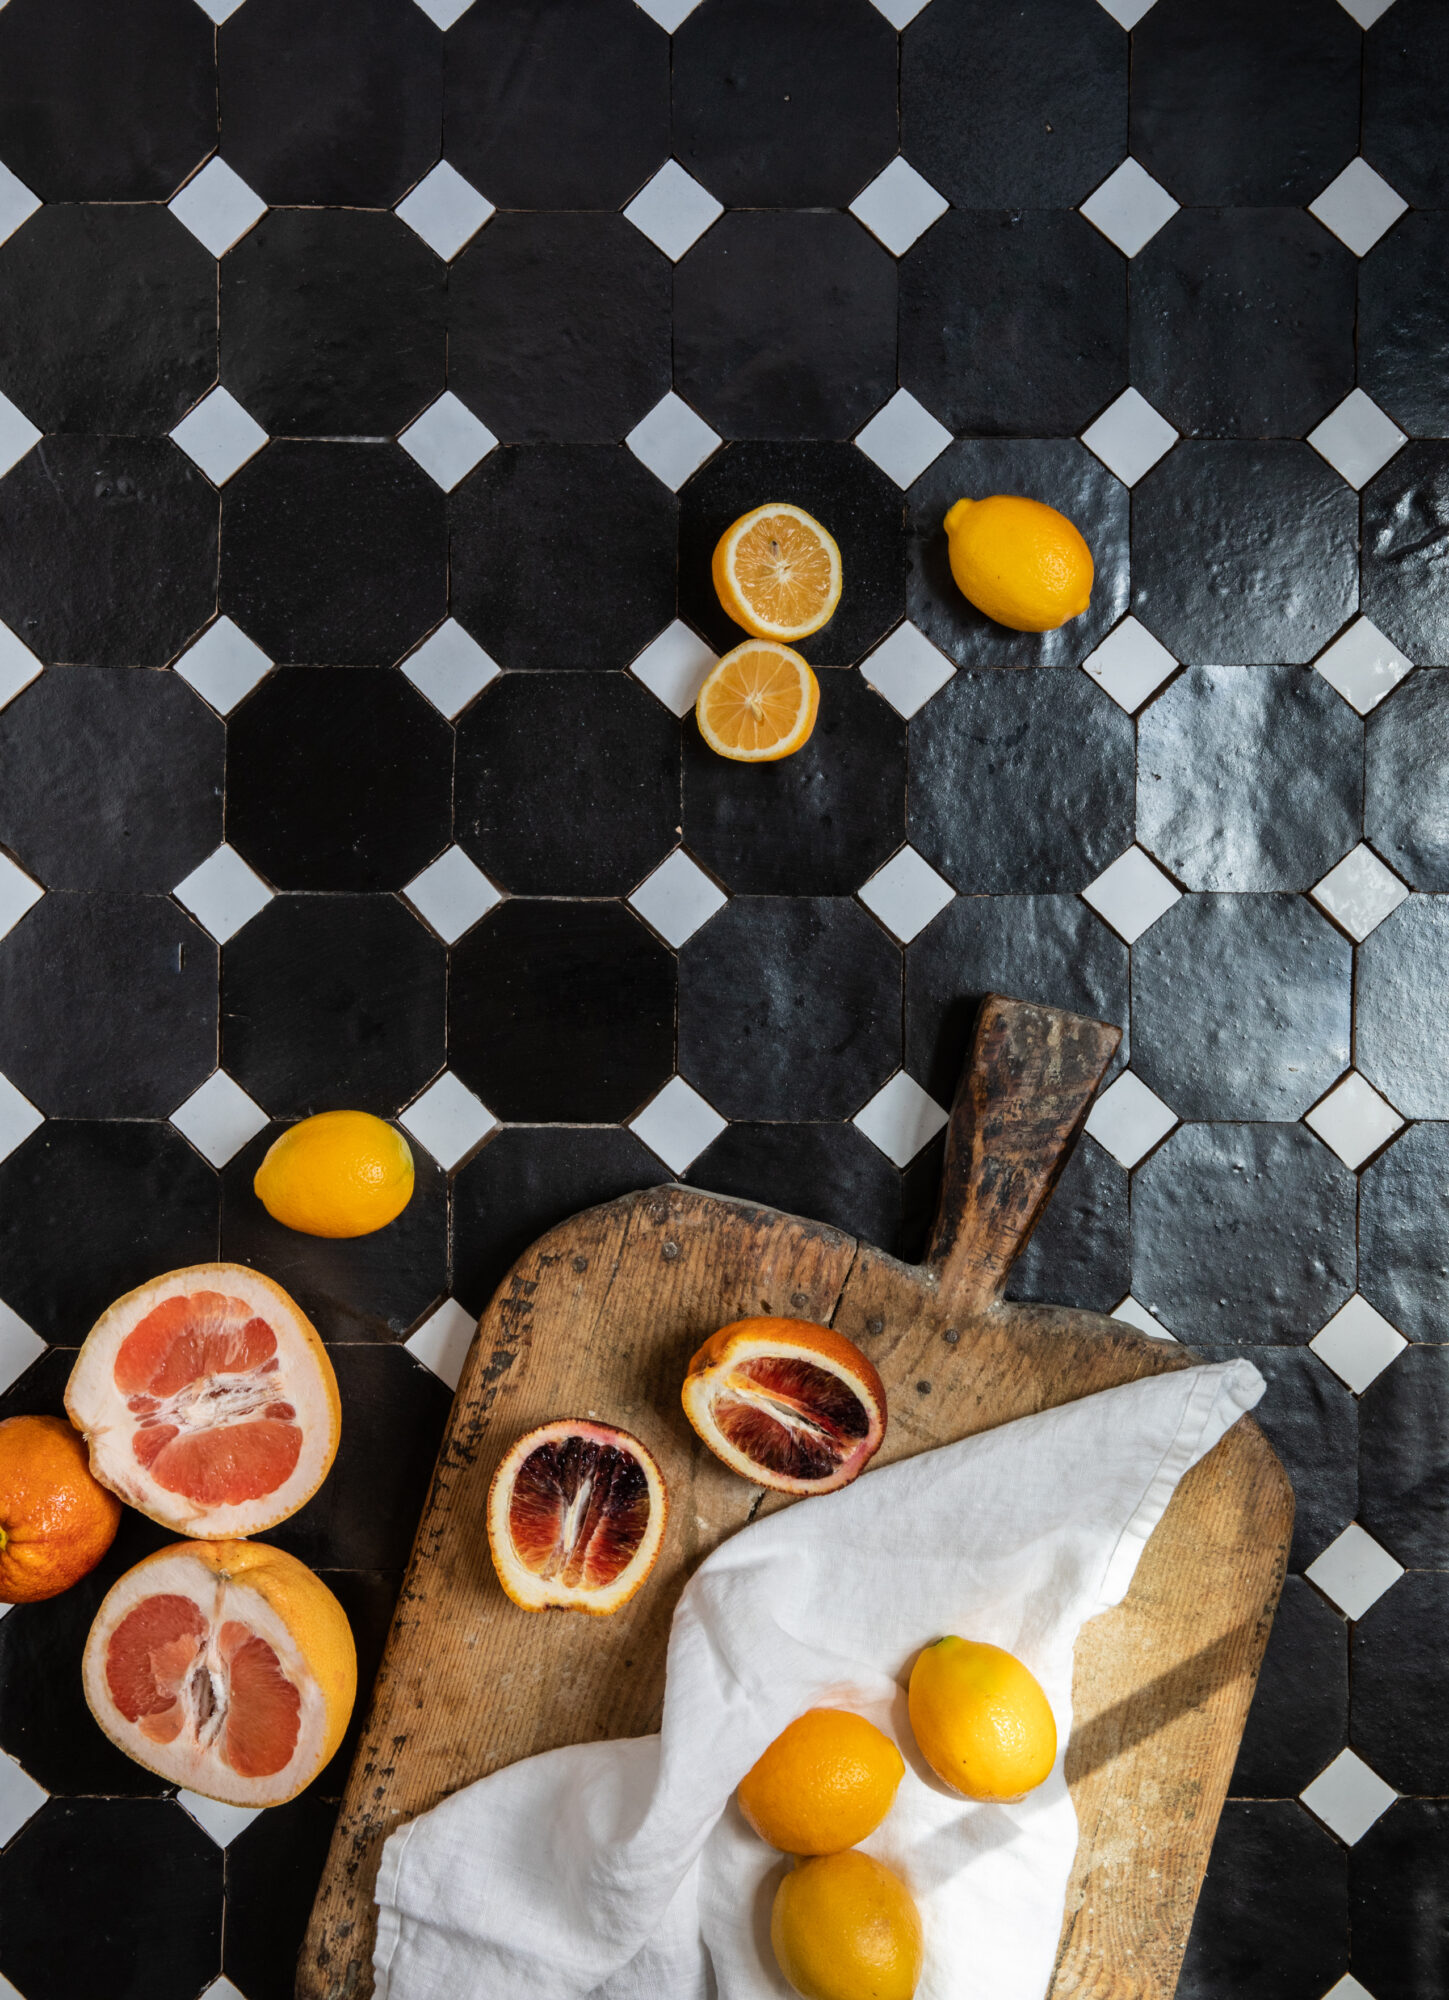 A New Tile Collection Reinvents Old World Patterns